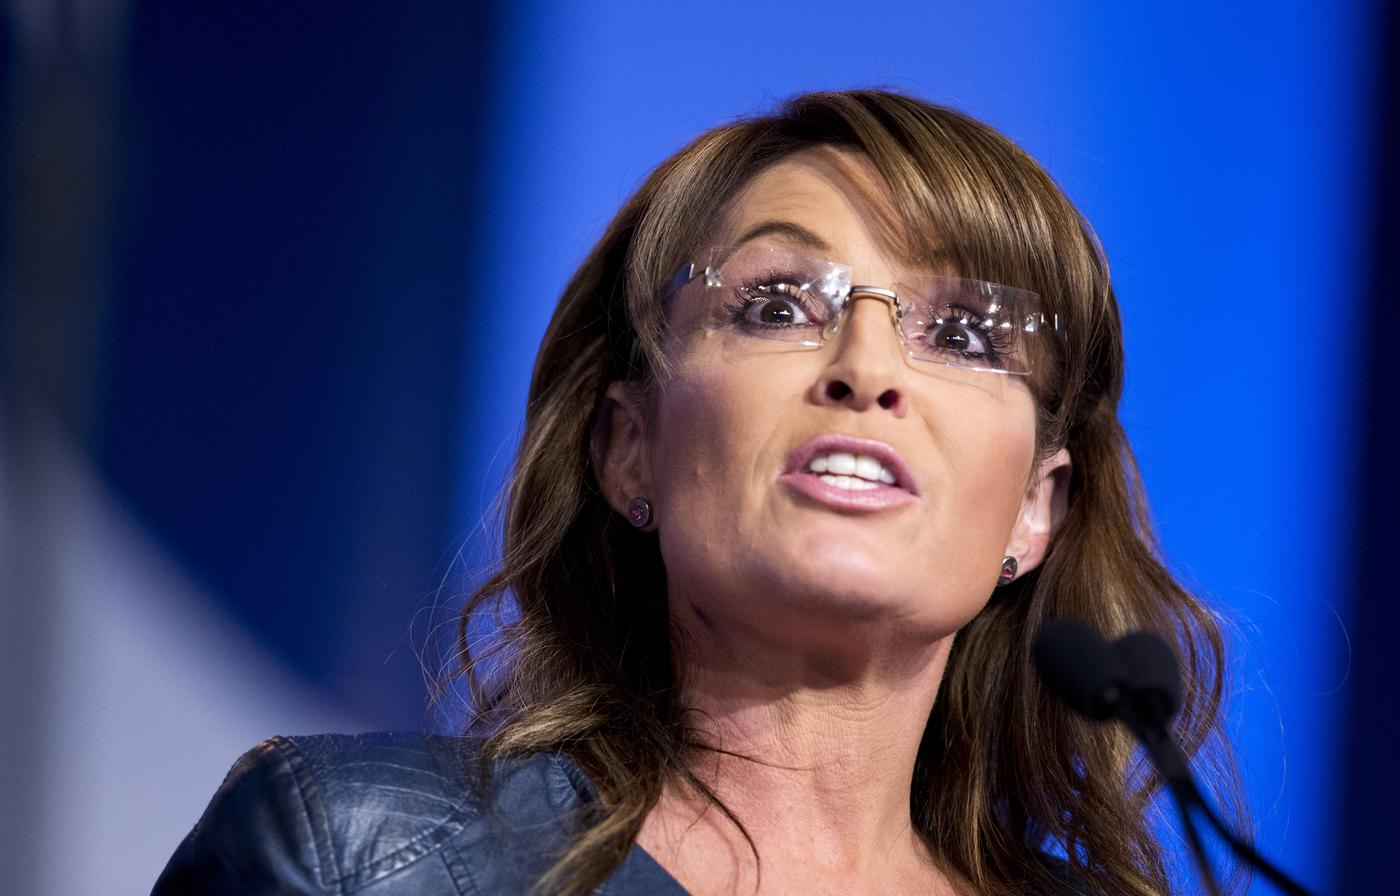 Sarah Palin forced to ad-lib speech after teleprompter breaks